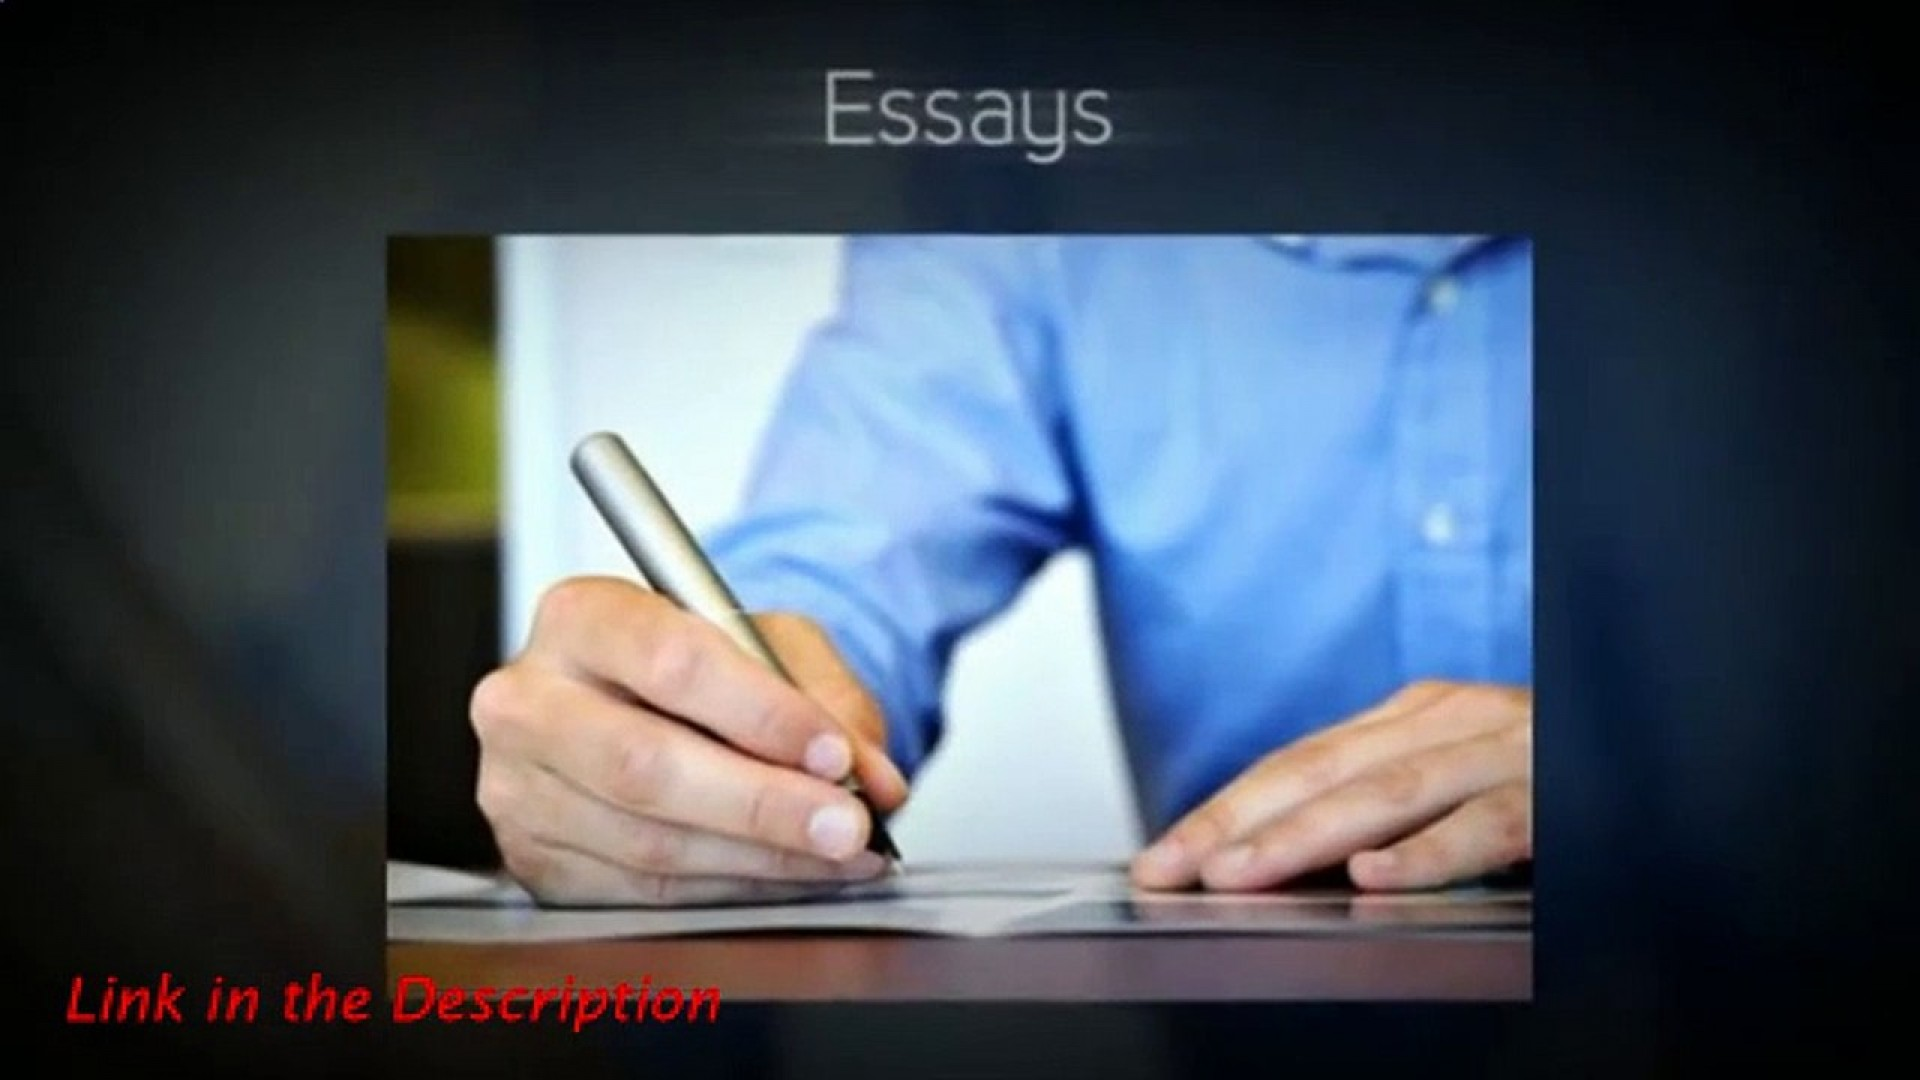 019 1280x720 Sdv How To Make Essay Look Longer Exceptional Period Your Trick An On Google Docs 1920